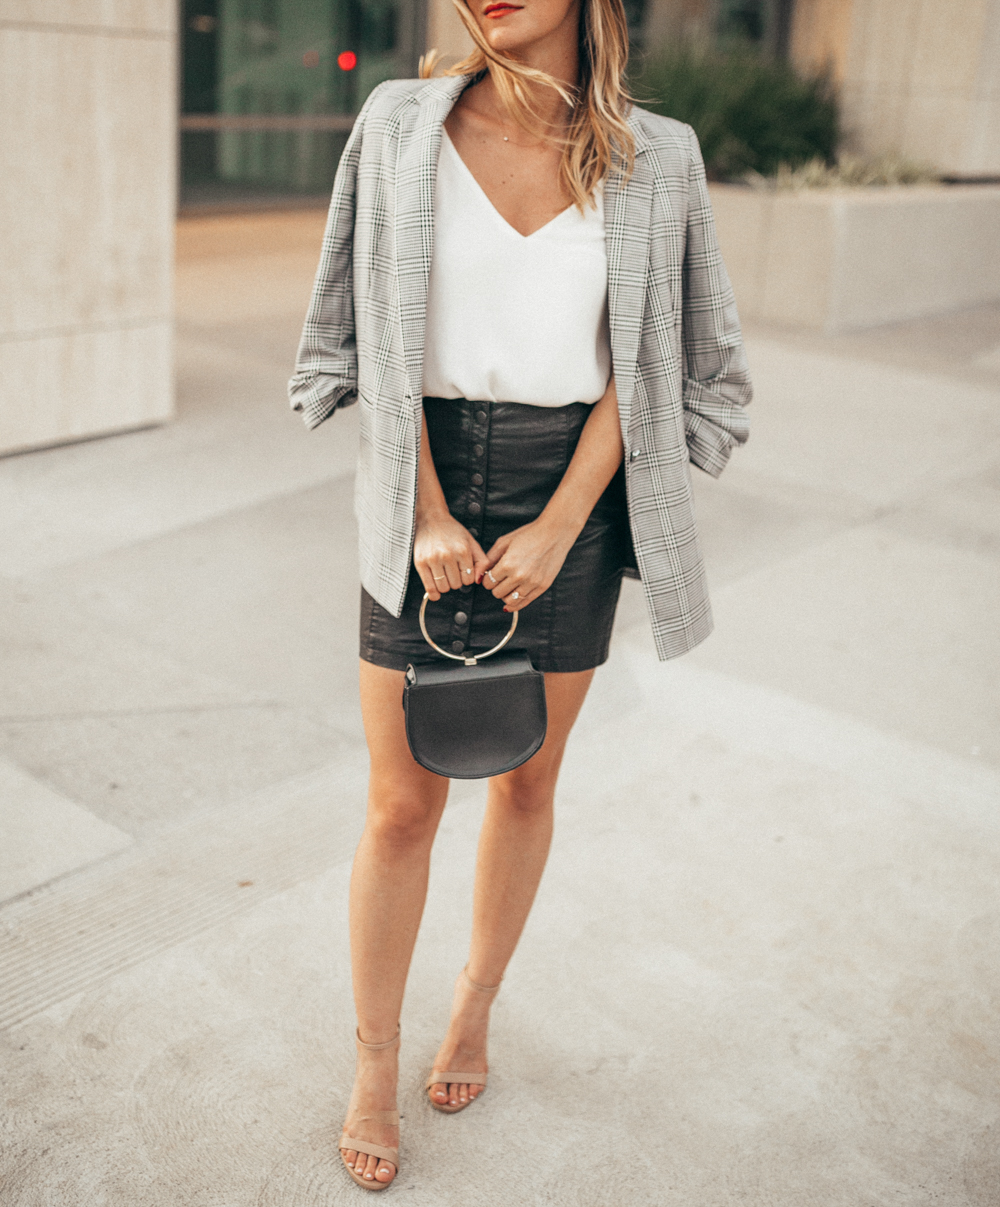 livvyland-blog-olivia-watson-fall-outfit-leather-mini-skirt-harringbone-blazer